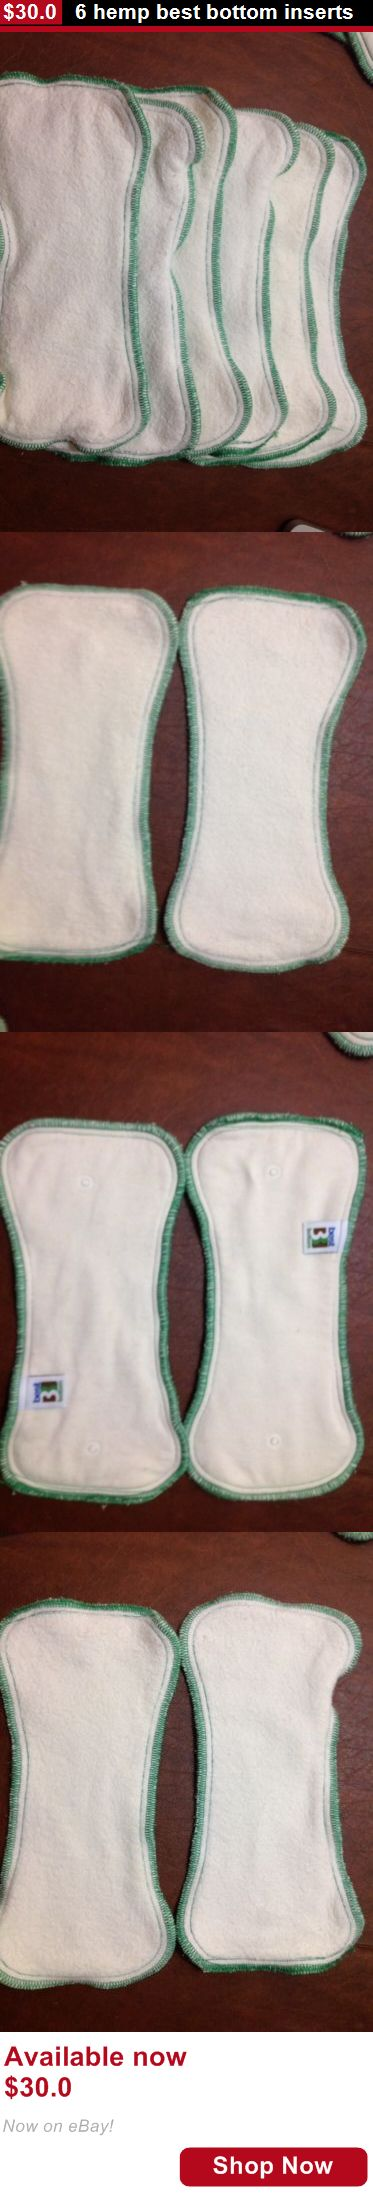 Baby Cloth Diapers: 6 Hemp Best Bottom Inserts BUY IT NOW ONLY: $30.0